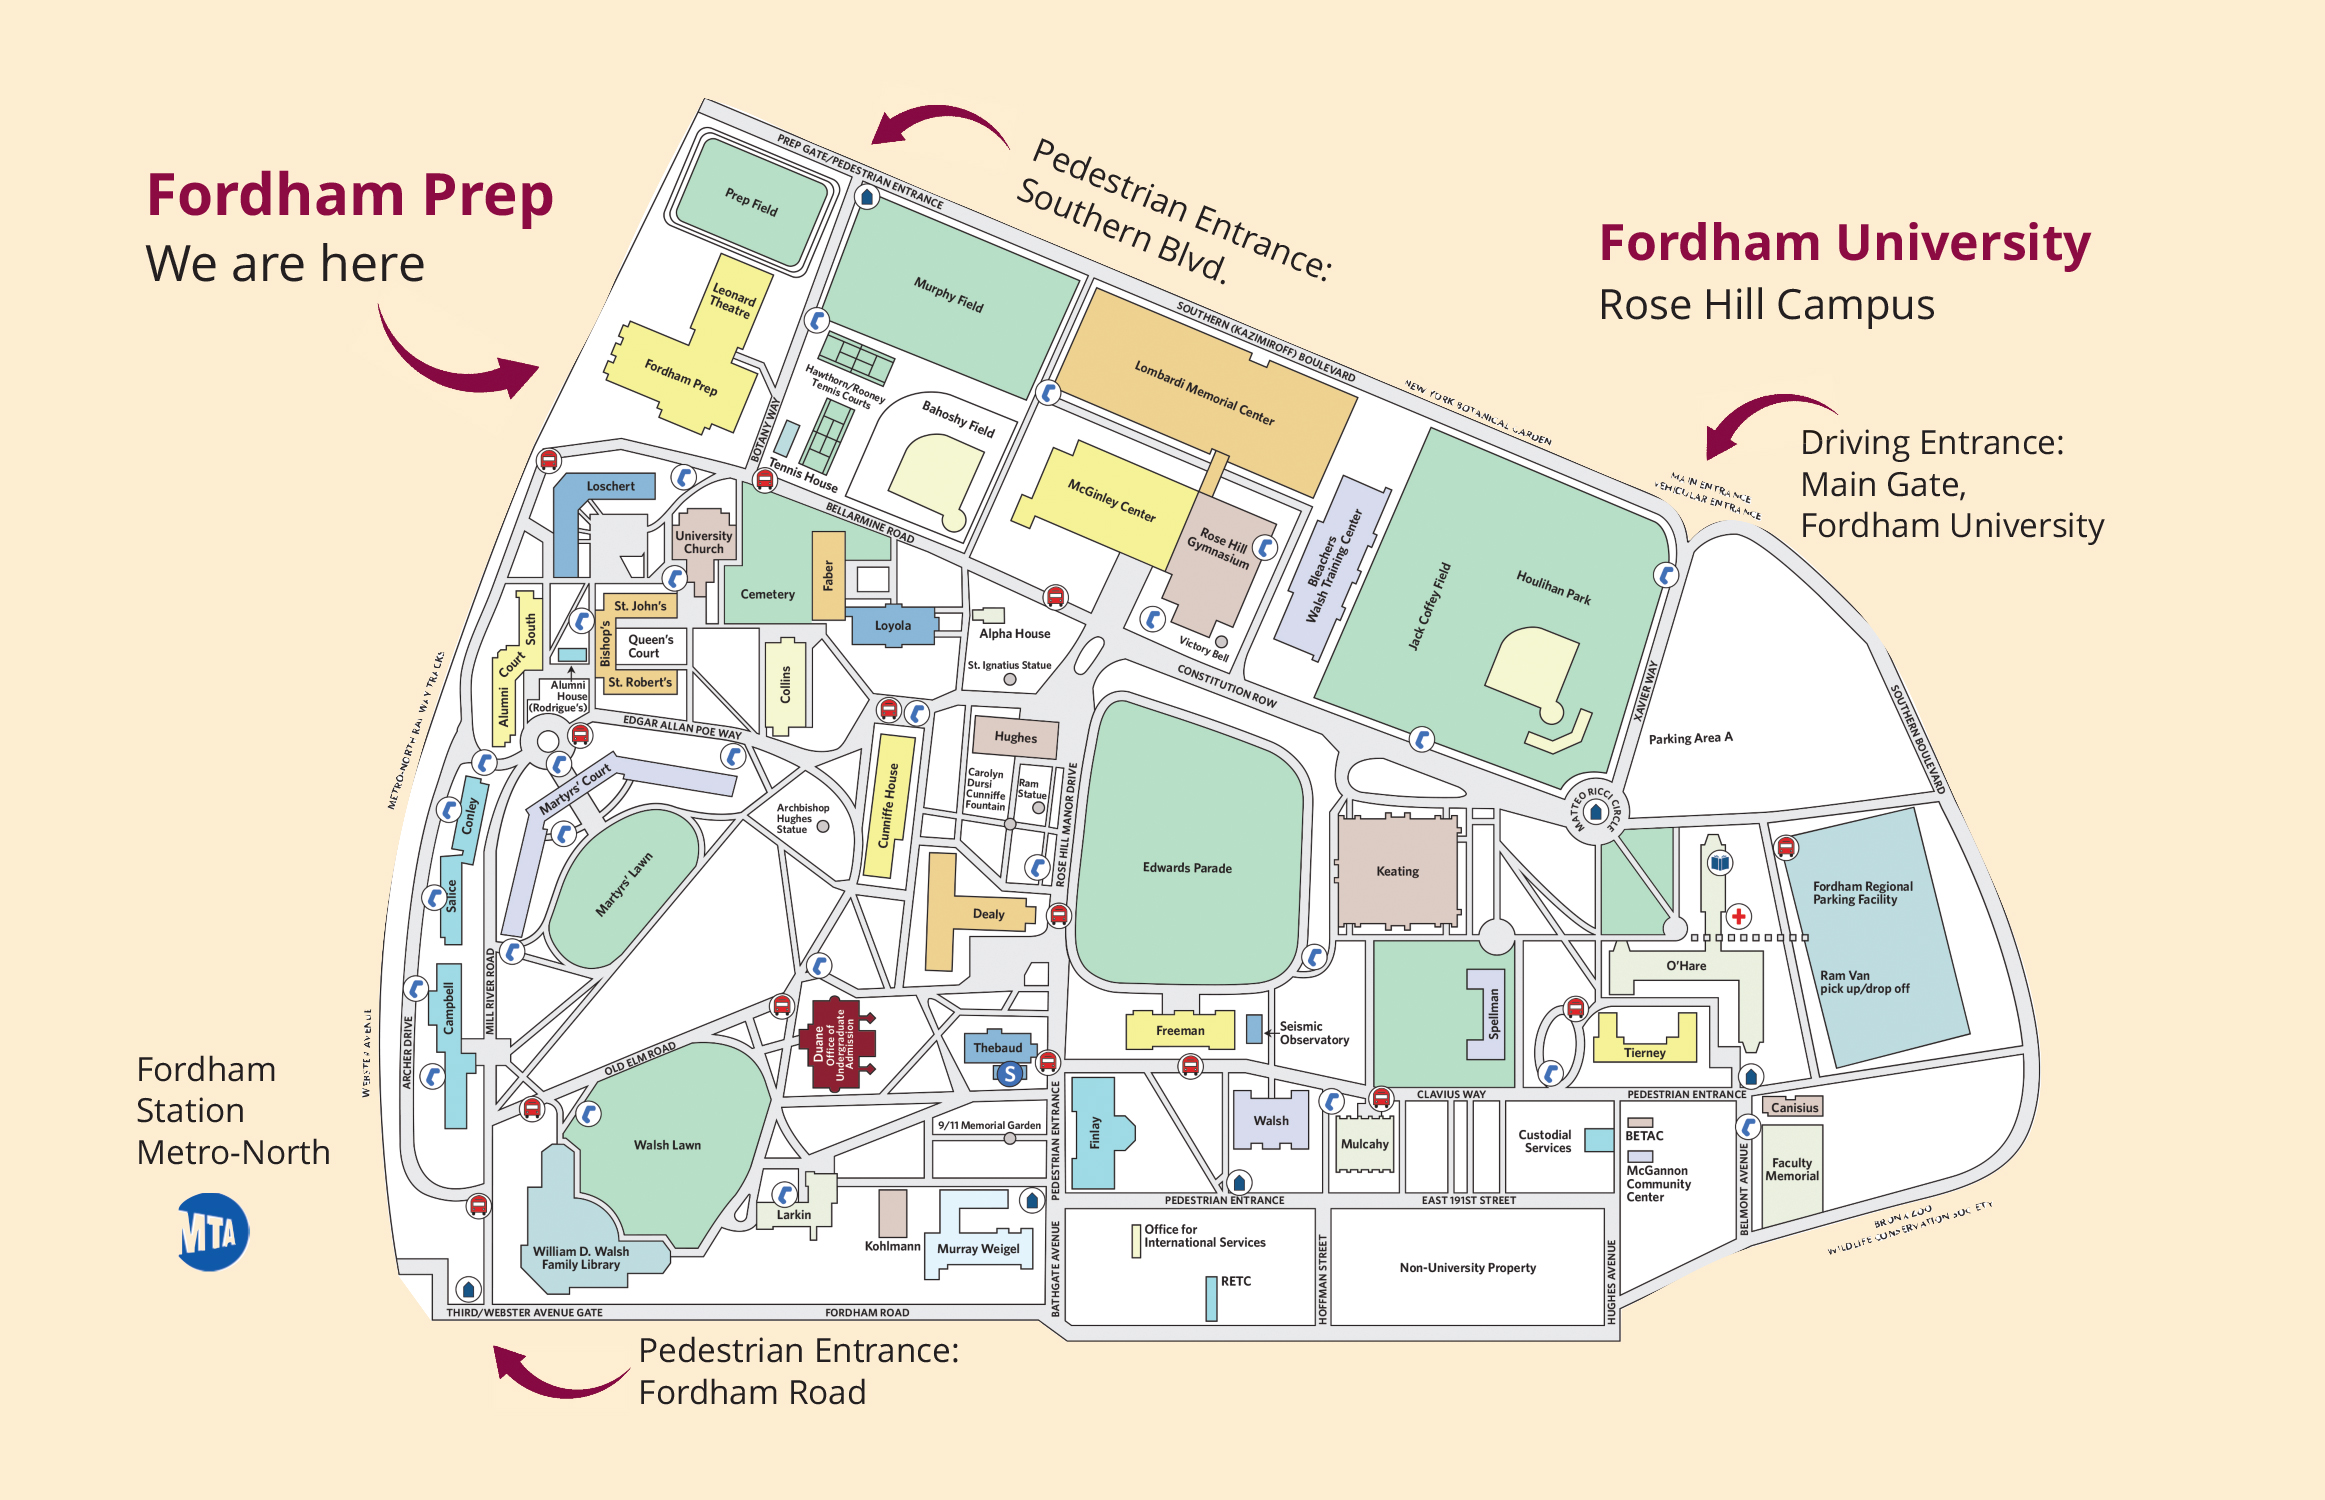 Fordham University and Fordham Prep Campus Map